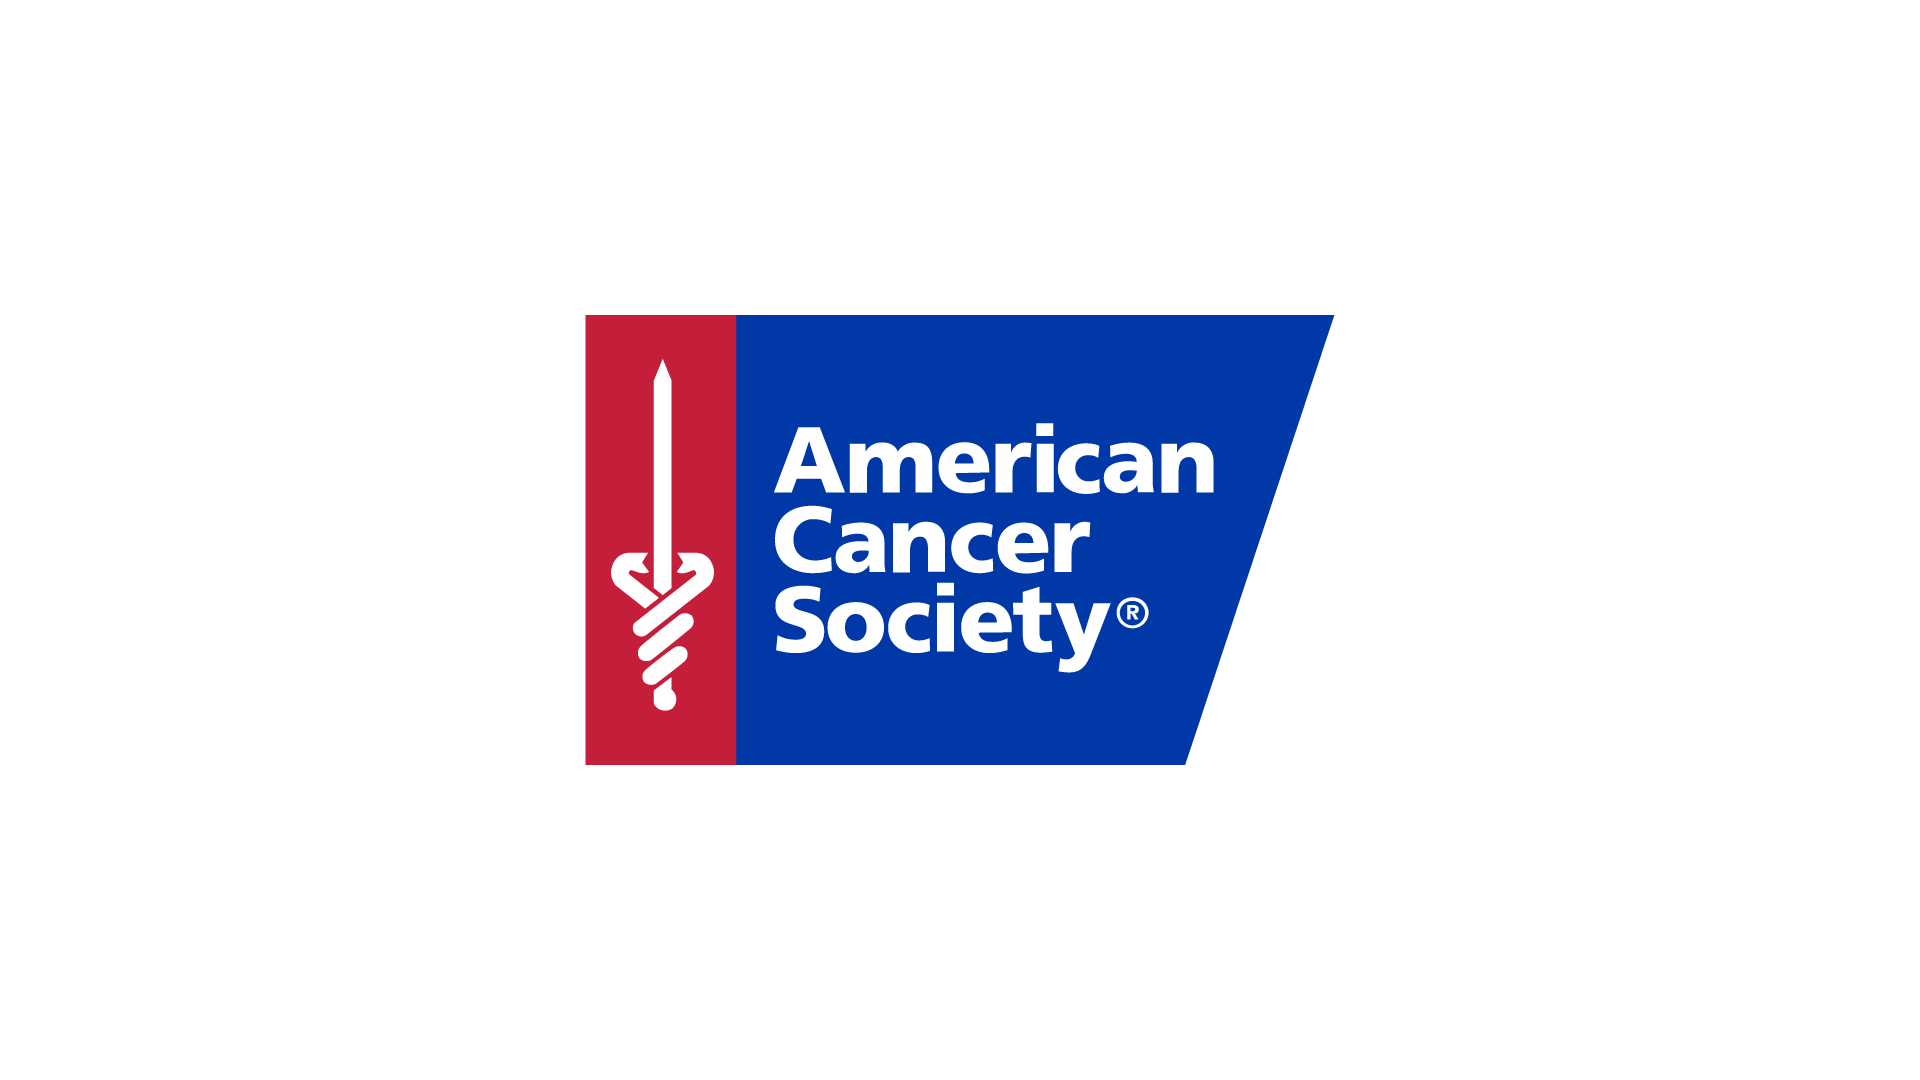 Logo of the American Cancer Society